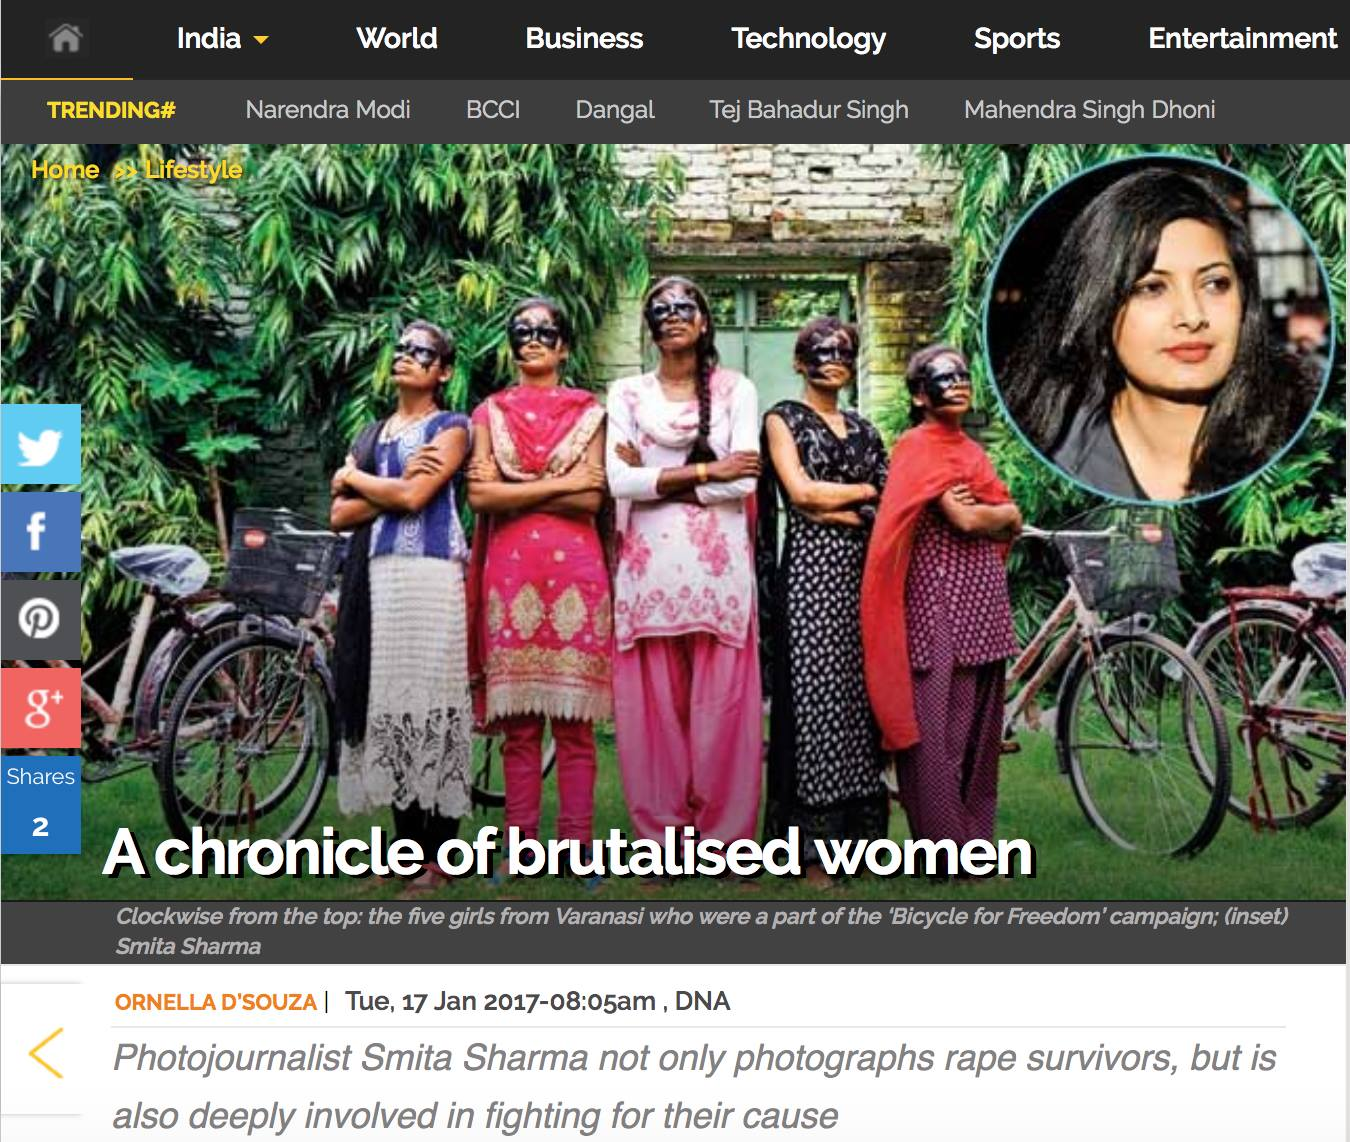 https://www.dnaindia.com/lifestyle/report-a-chronicle-of-brutalised-women-2293168